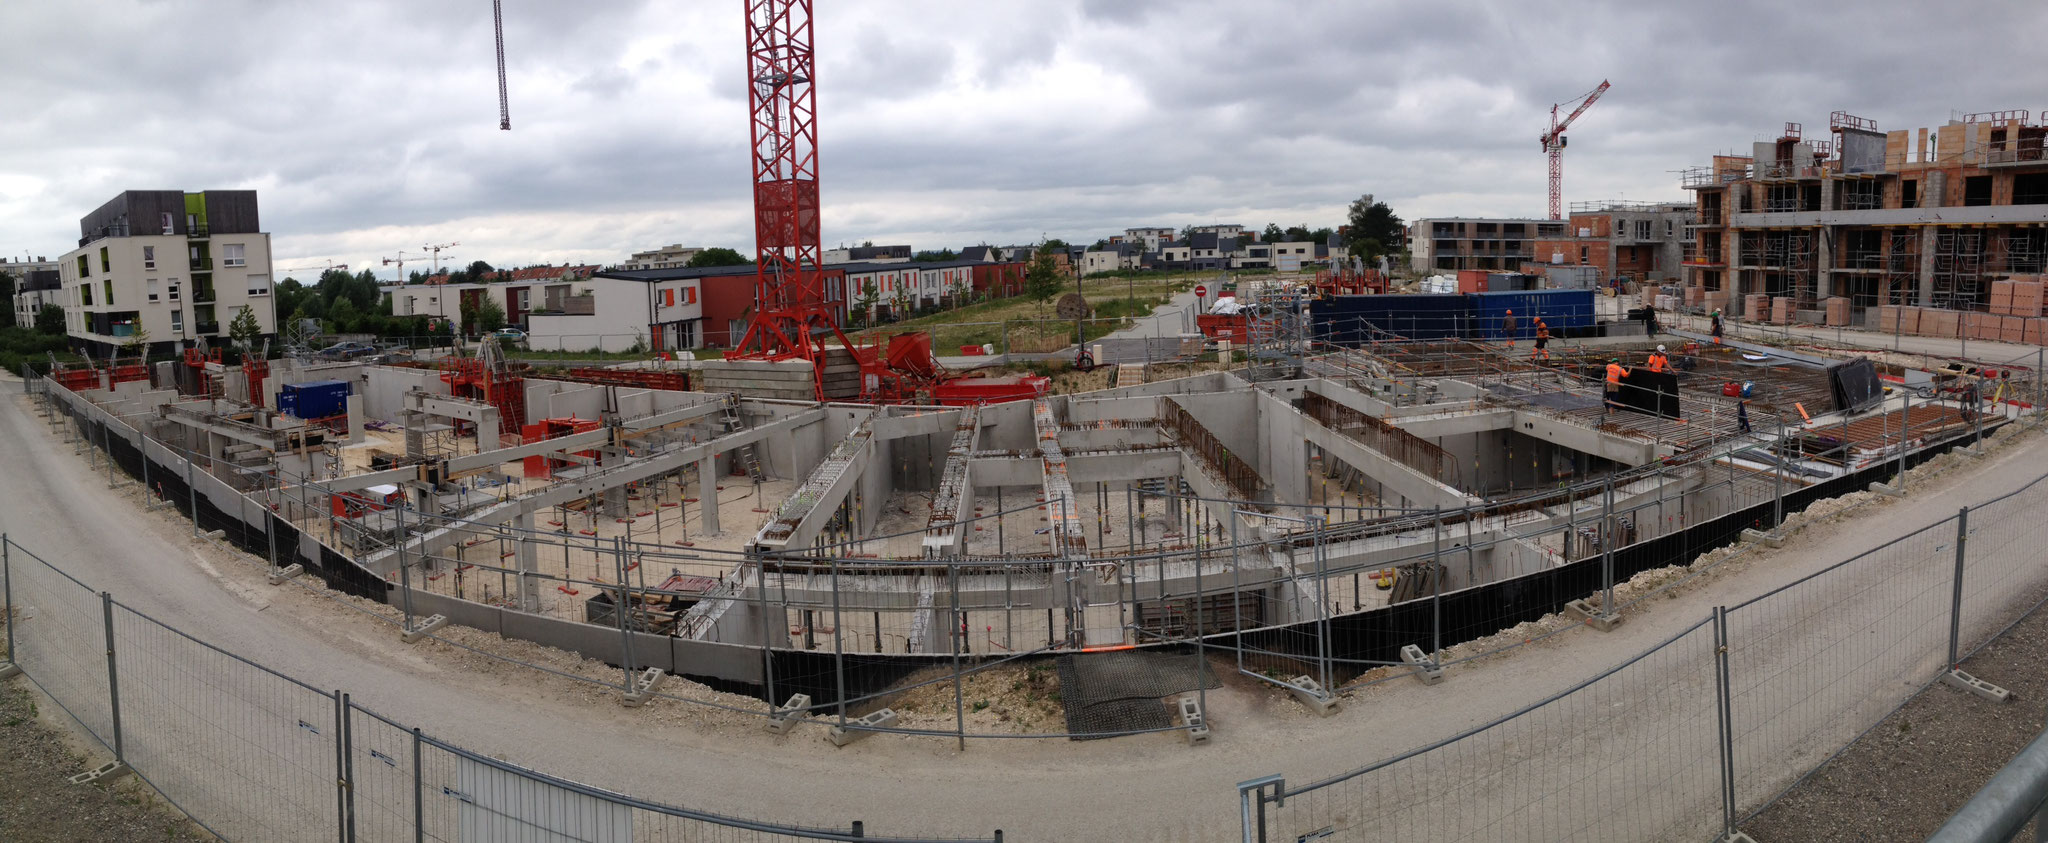 Construction de 51 logements collectifs à AMIENS. Mission de Niveau 2.